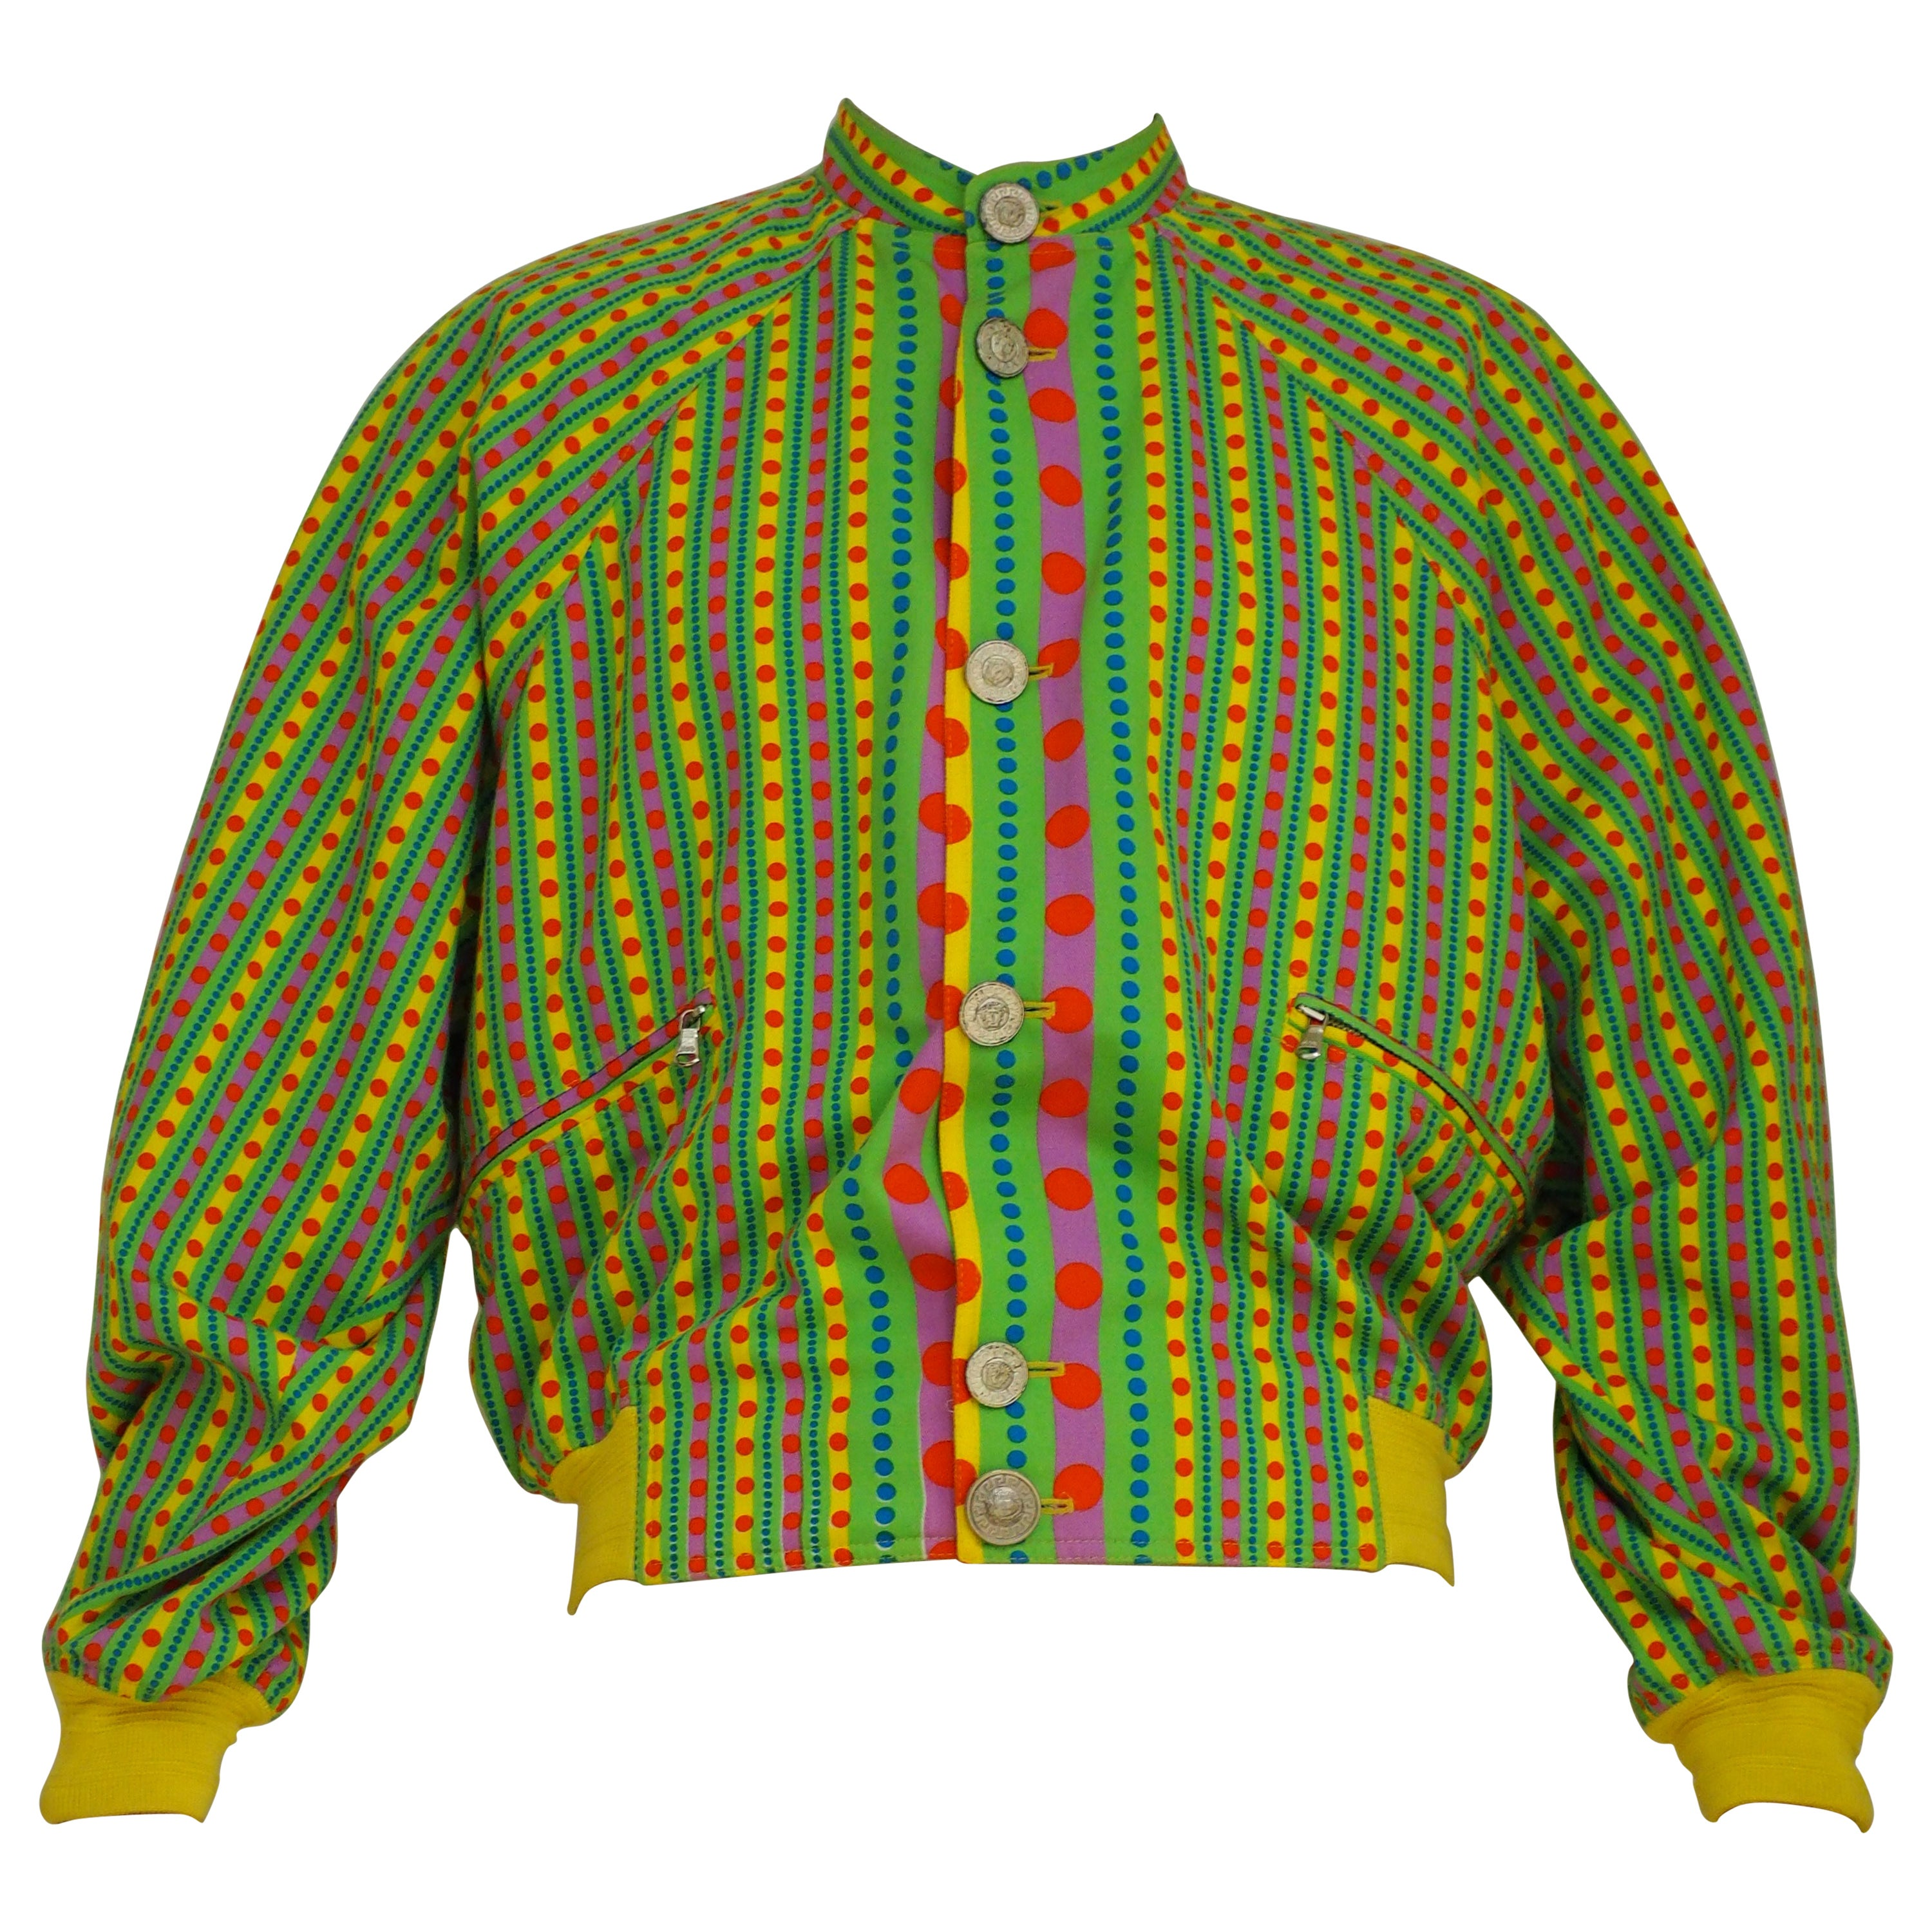 Gianni Versace yellow green fucsia  psychedelic bomber